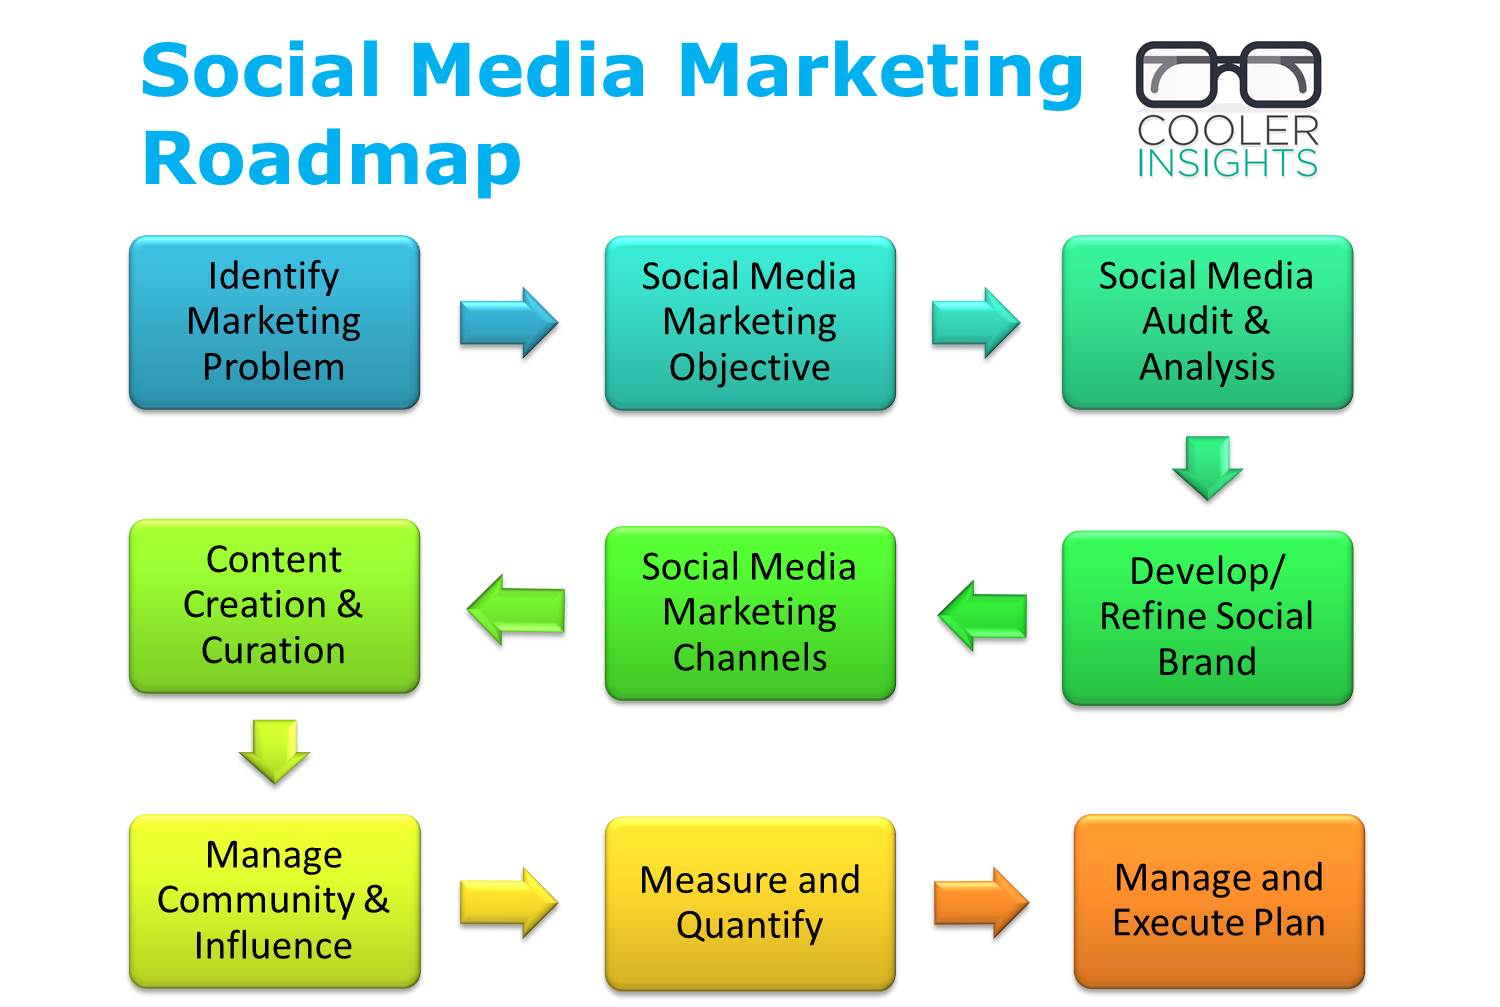 social-media-marketing-roadmap-a-simple-9-step-process